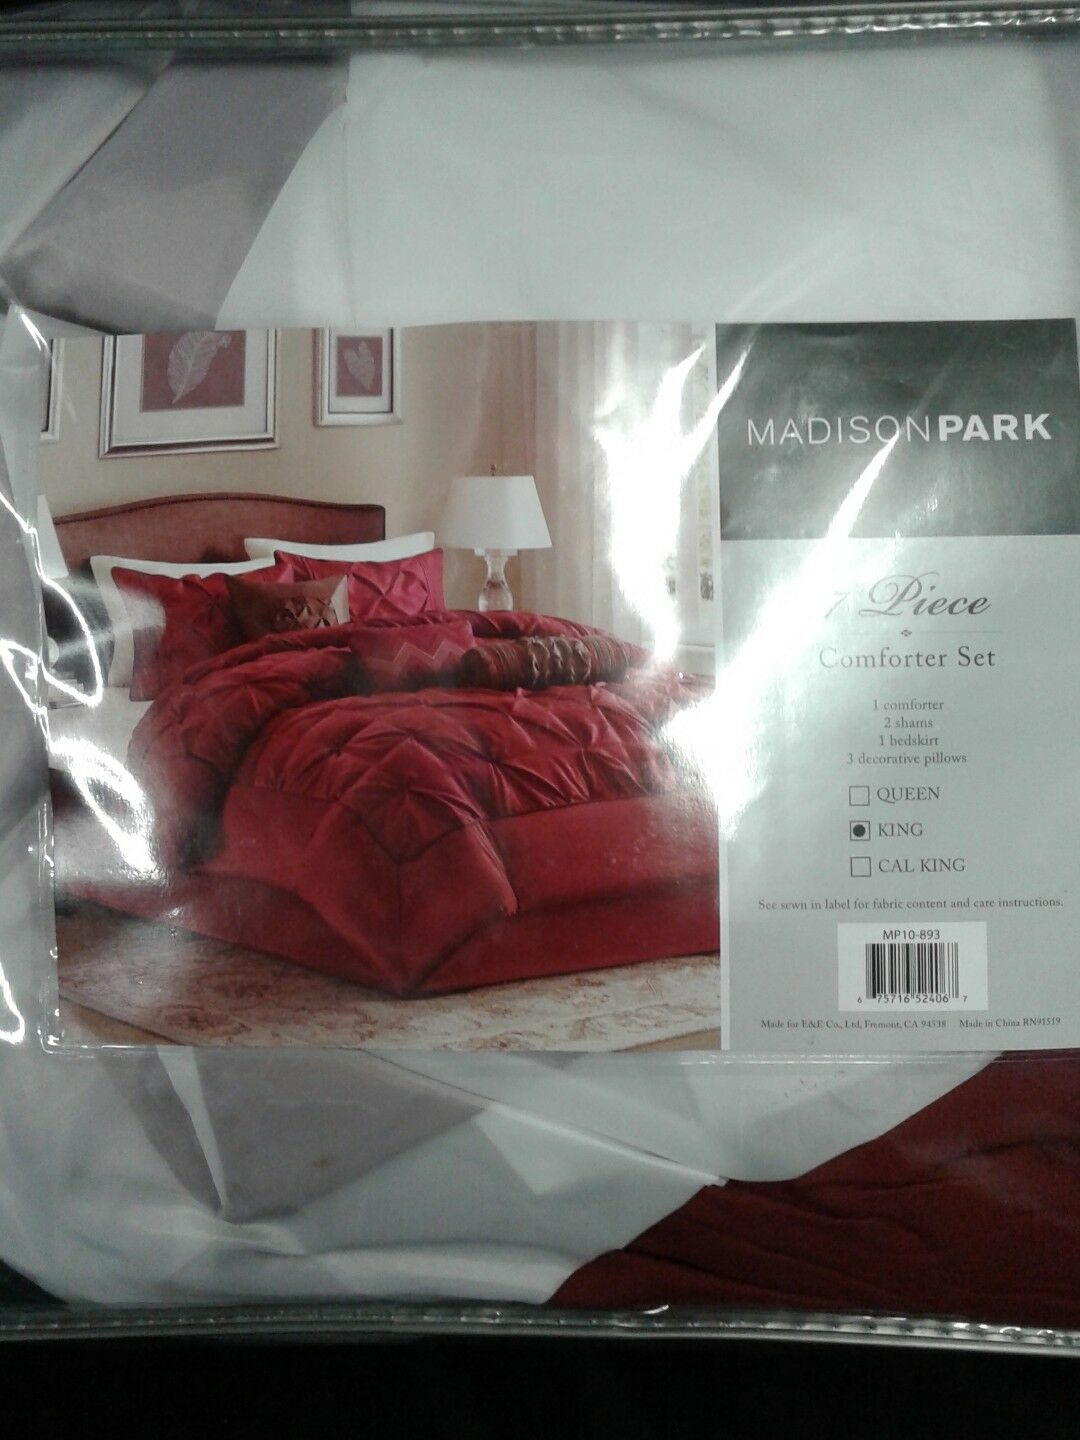 Madison Park MP10-893 Tufted 7pc Comforter Set rot King